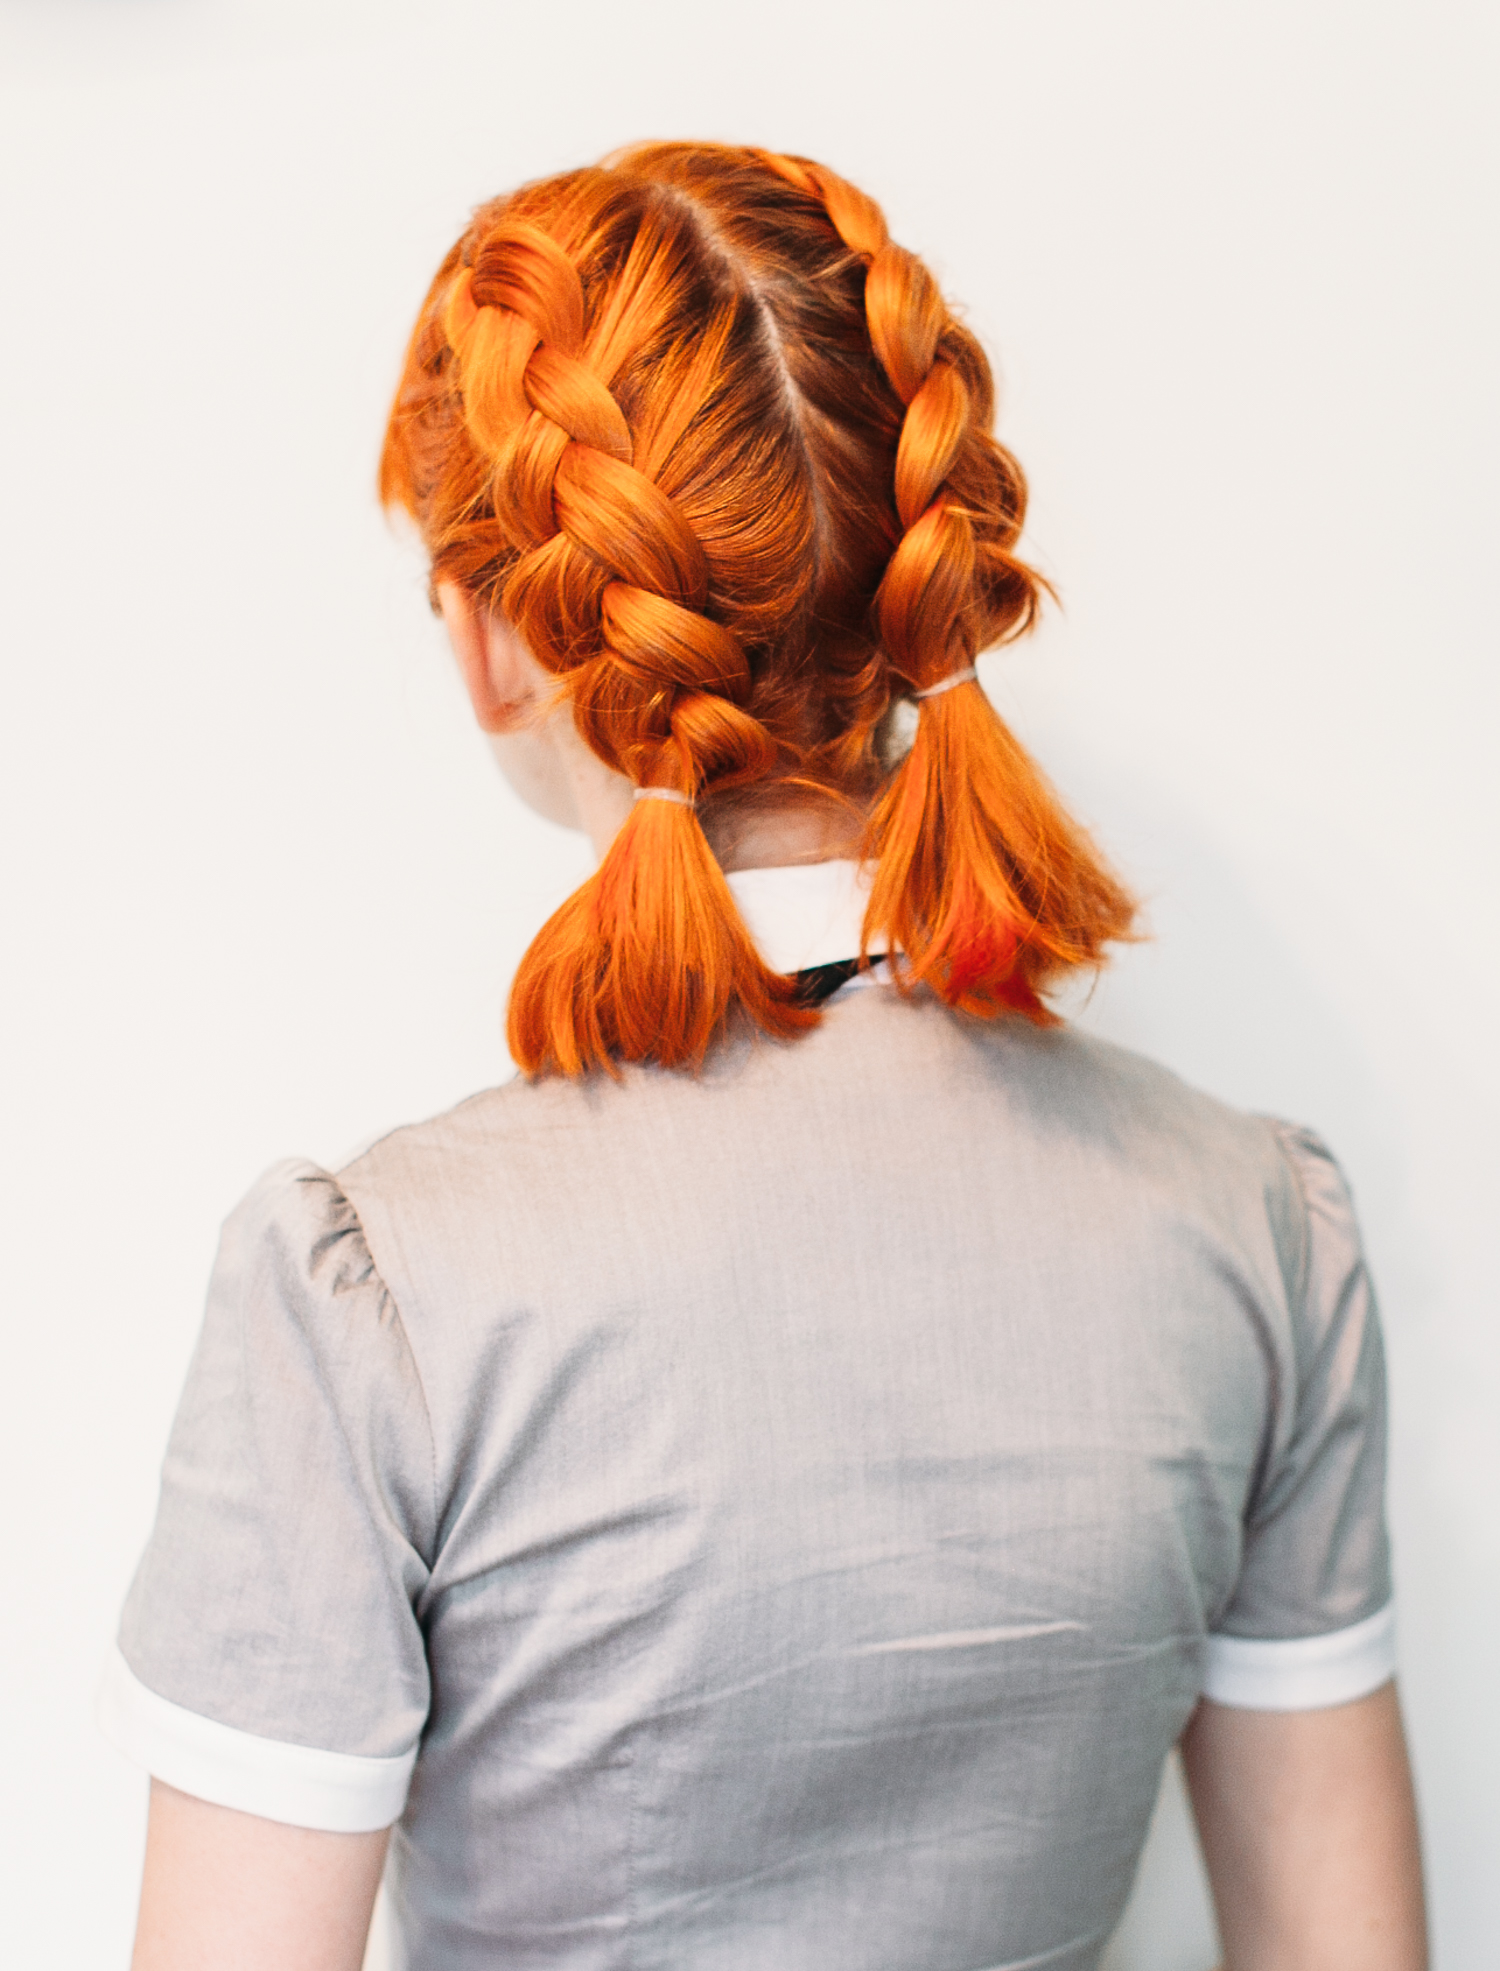 Dutch Braided Headband: Double Dutch Pigtails For Short Hair